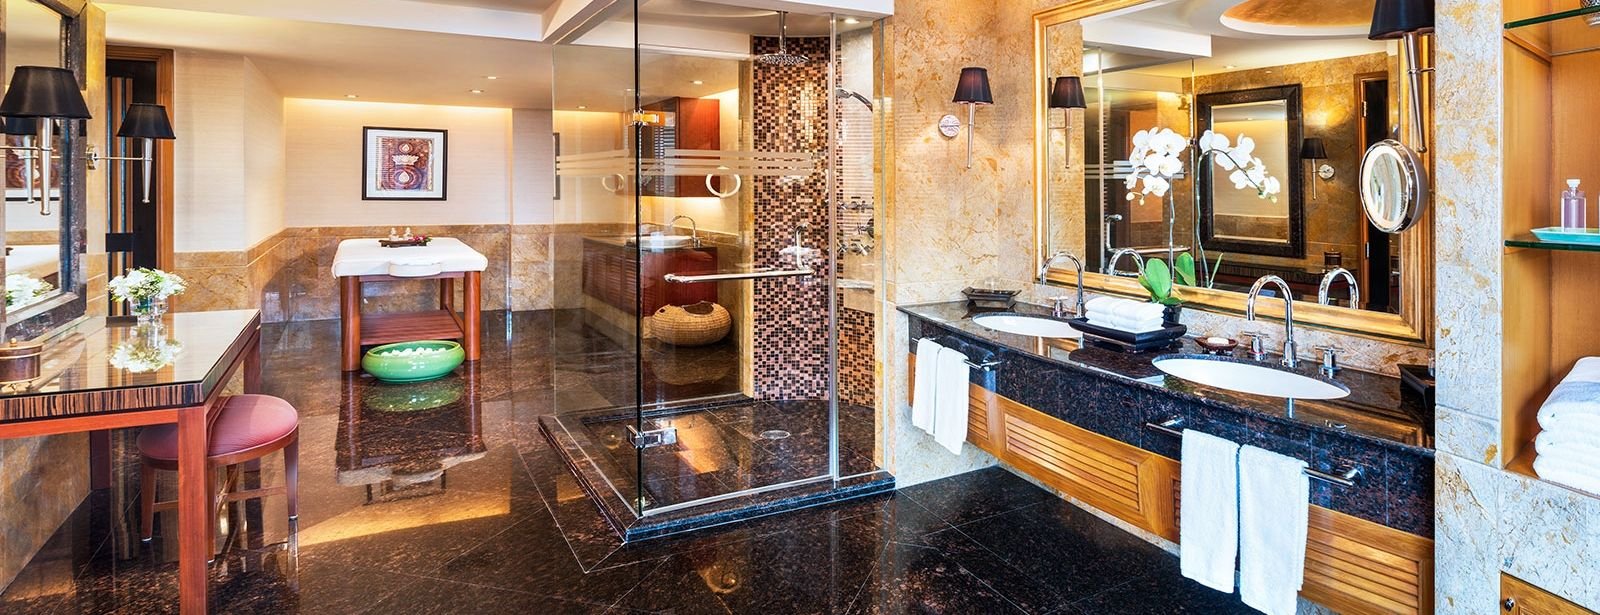 Royal Orchid Presidential Suite - Bathroom - Royal Orchid Sheraton Hotel Bangkok